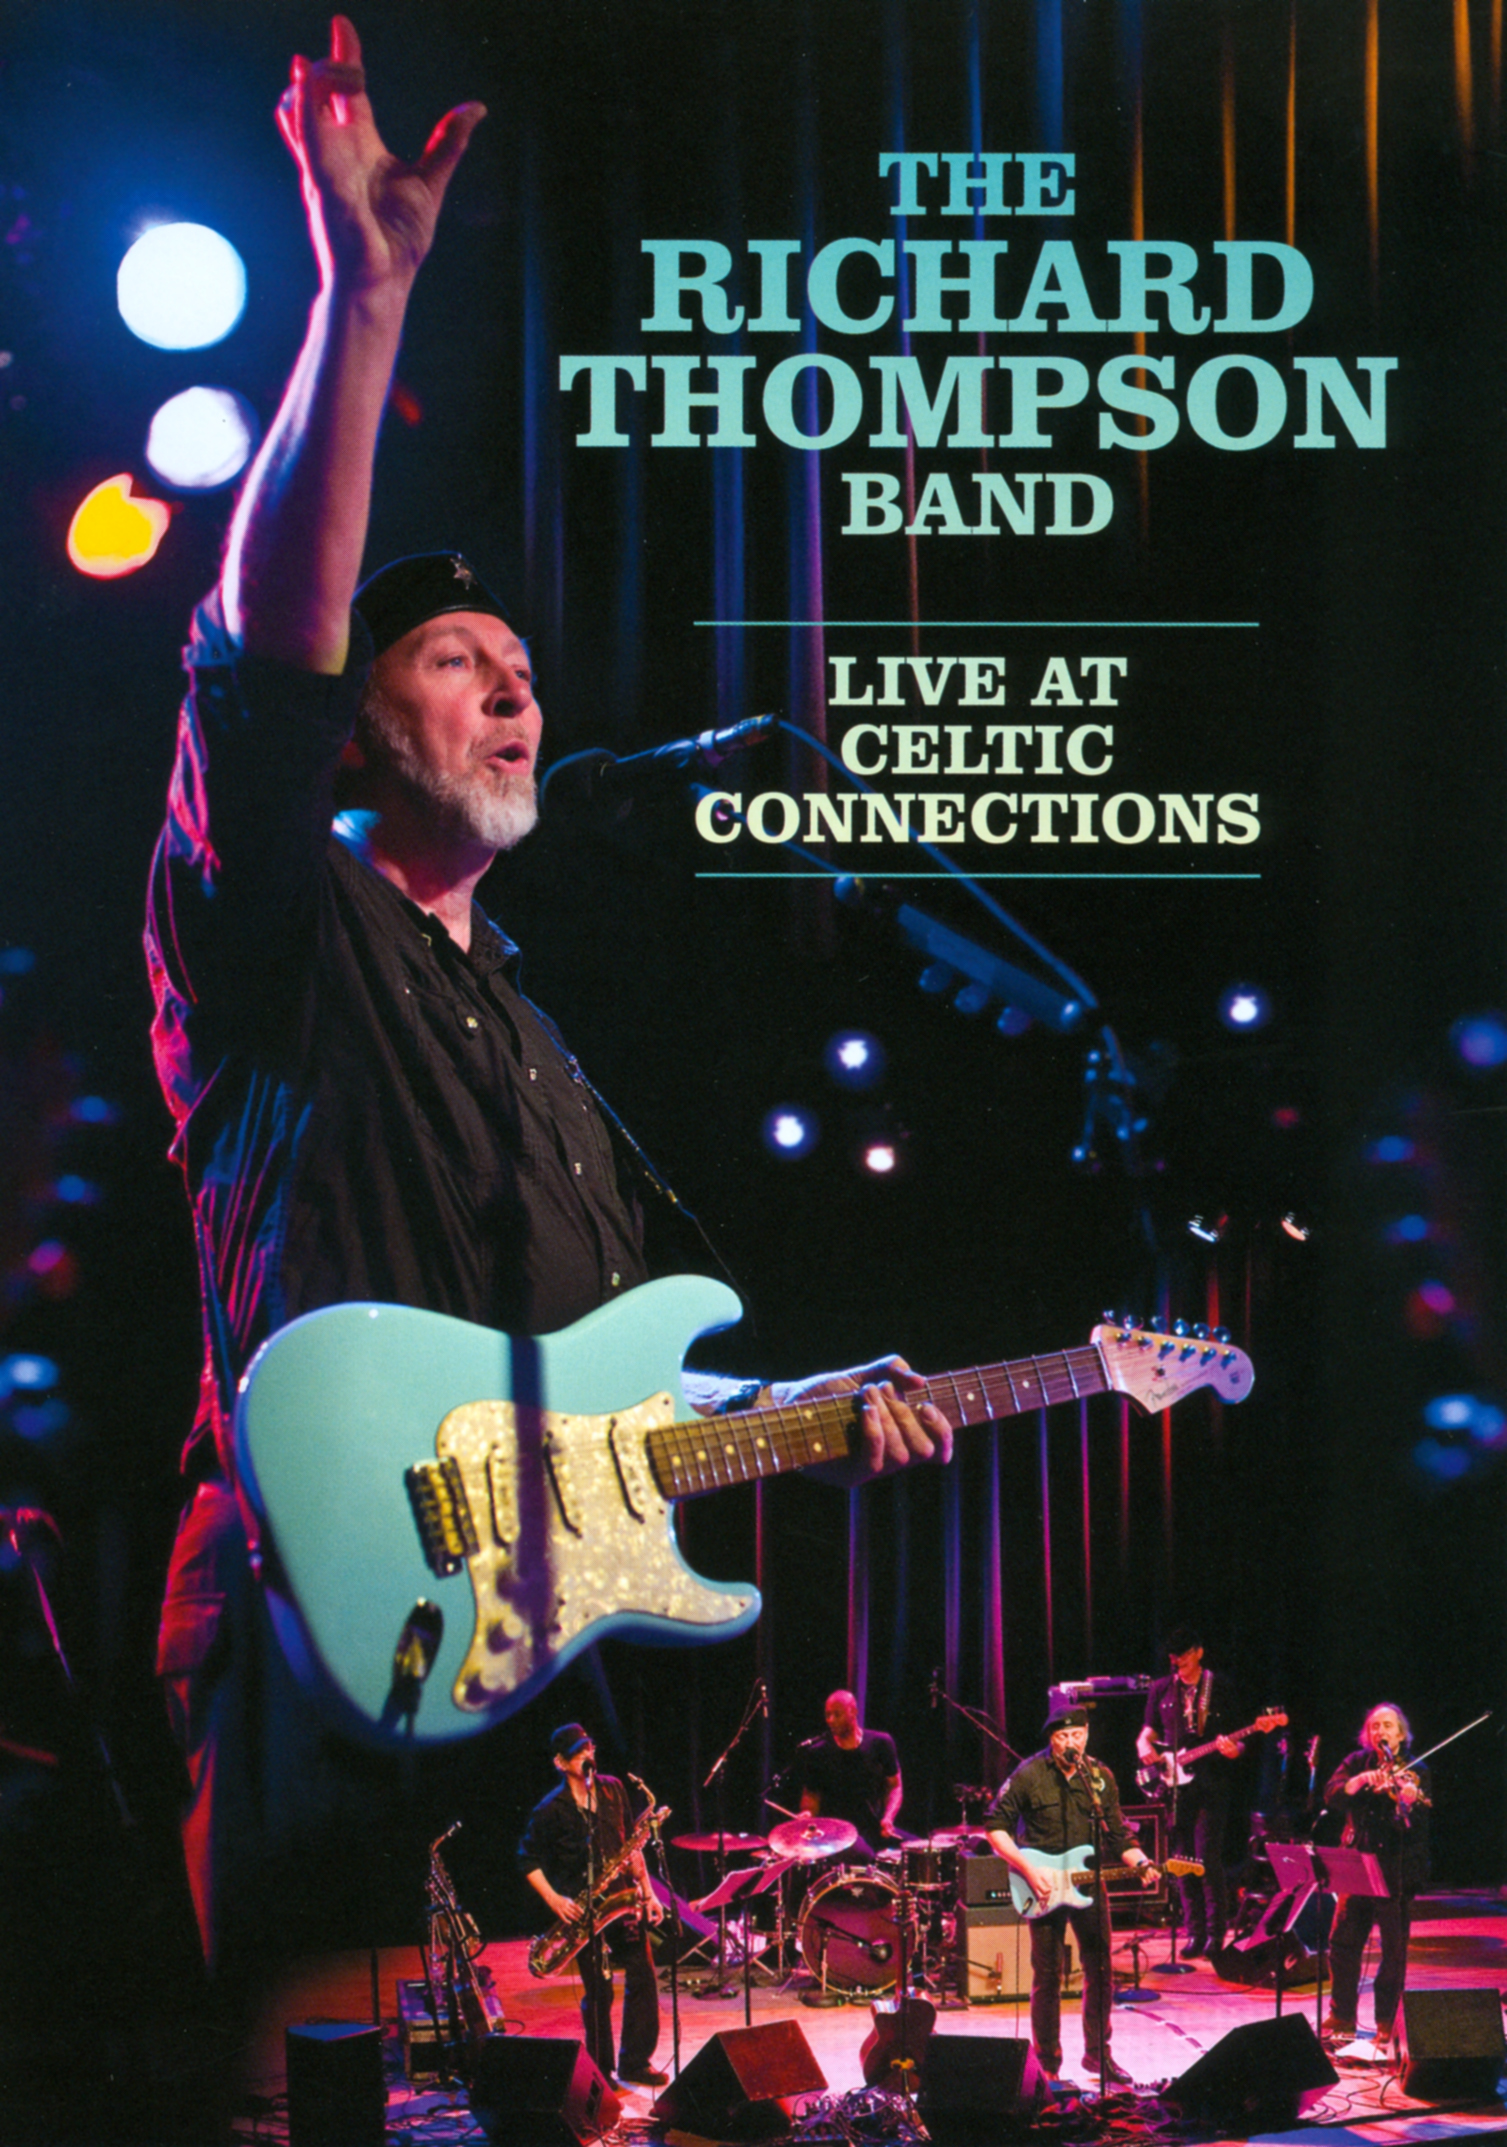 The Richard Thompson Band: Live at Celtic Connection